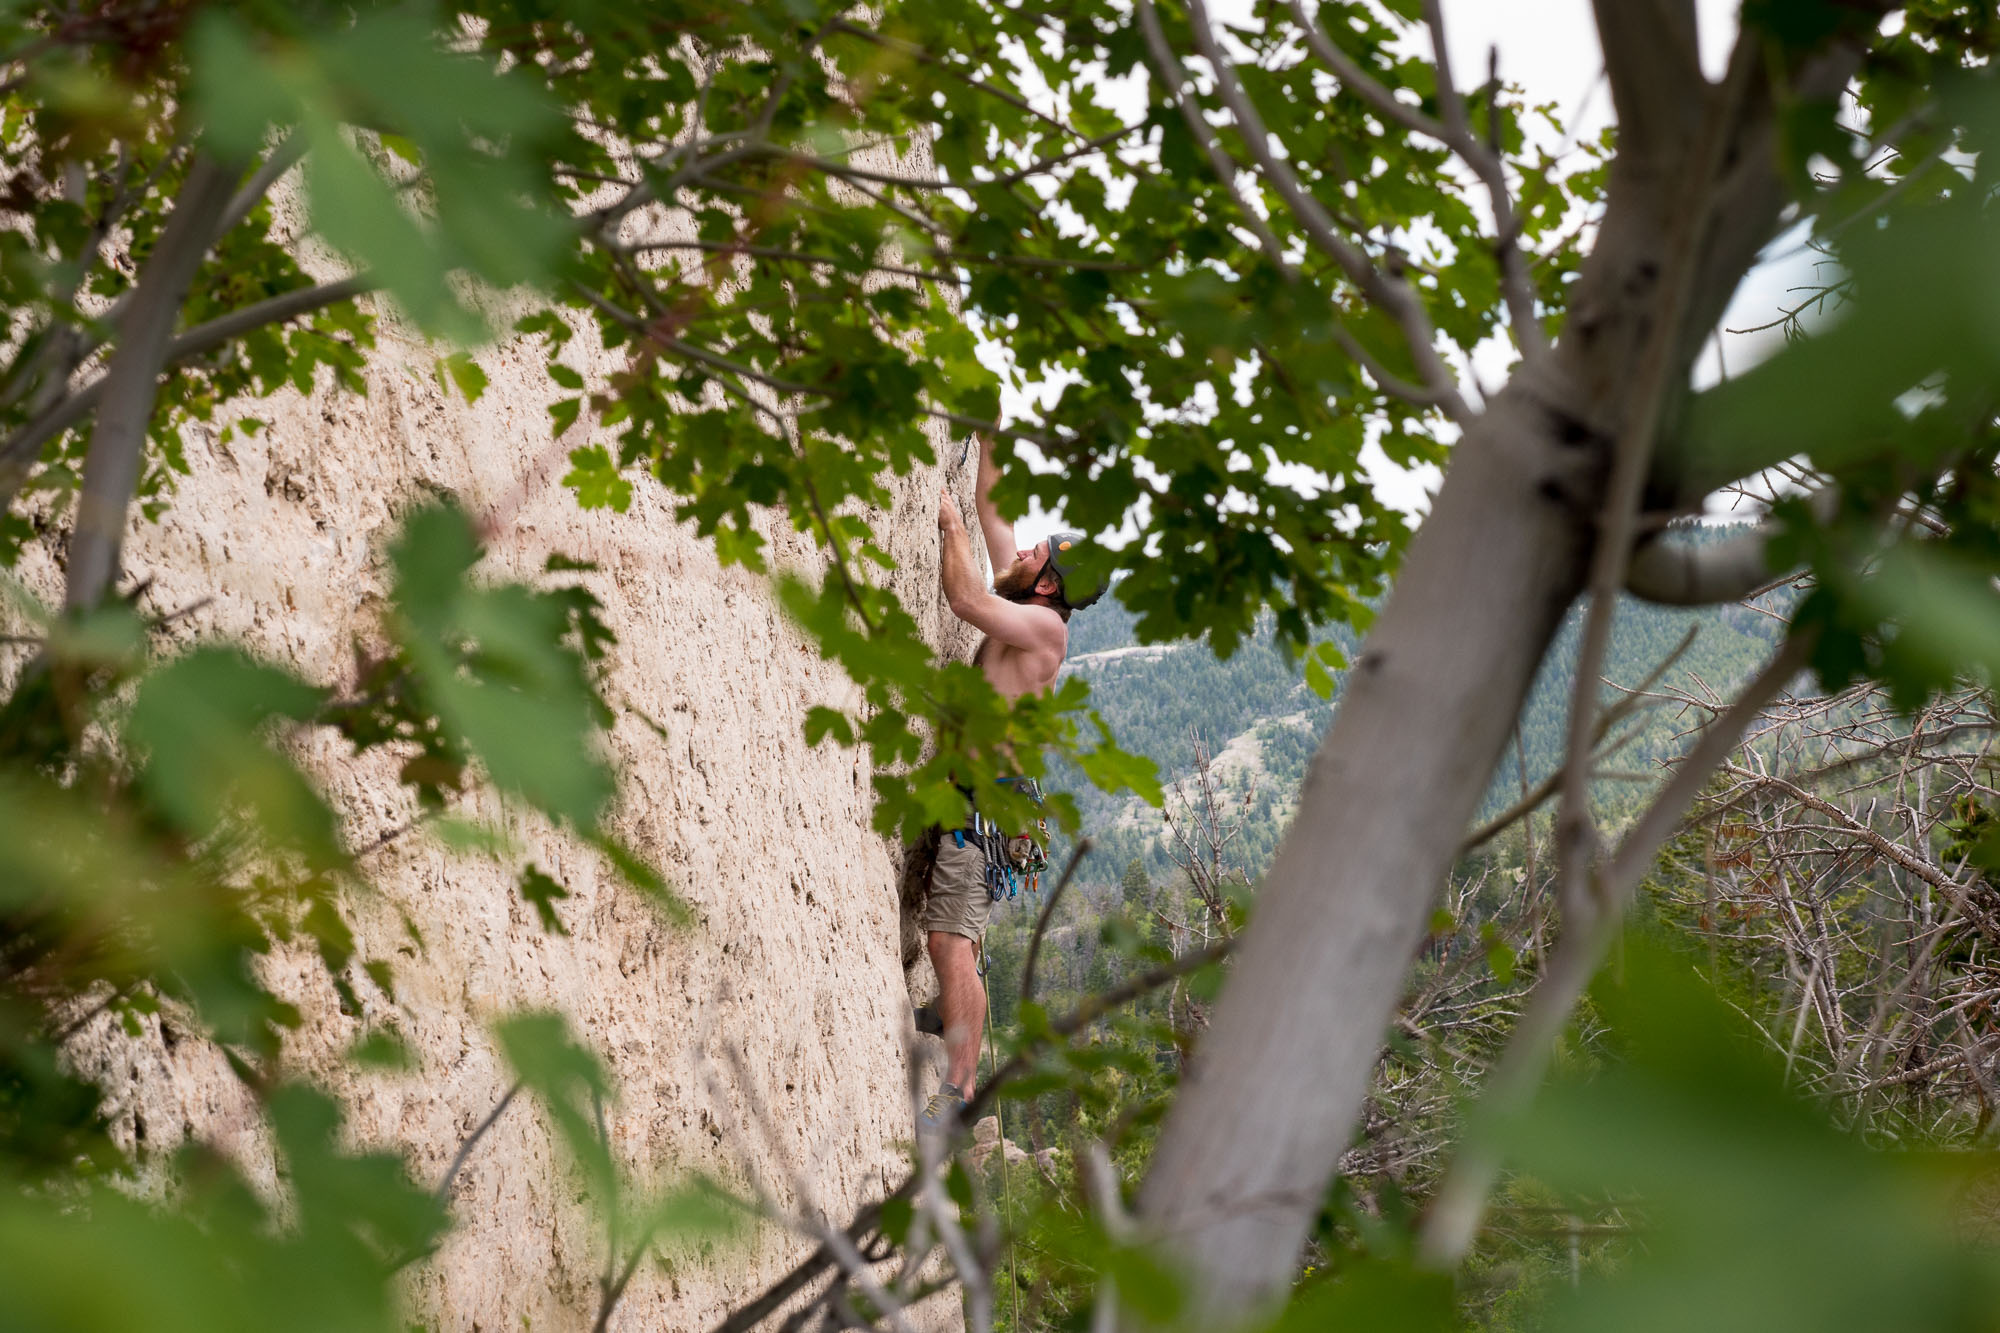 Will on a 10b